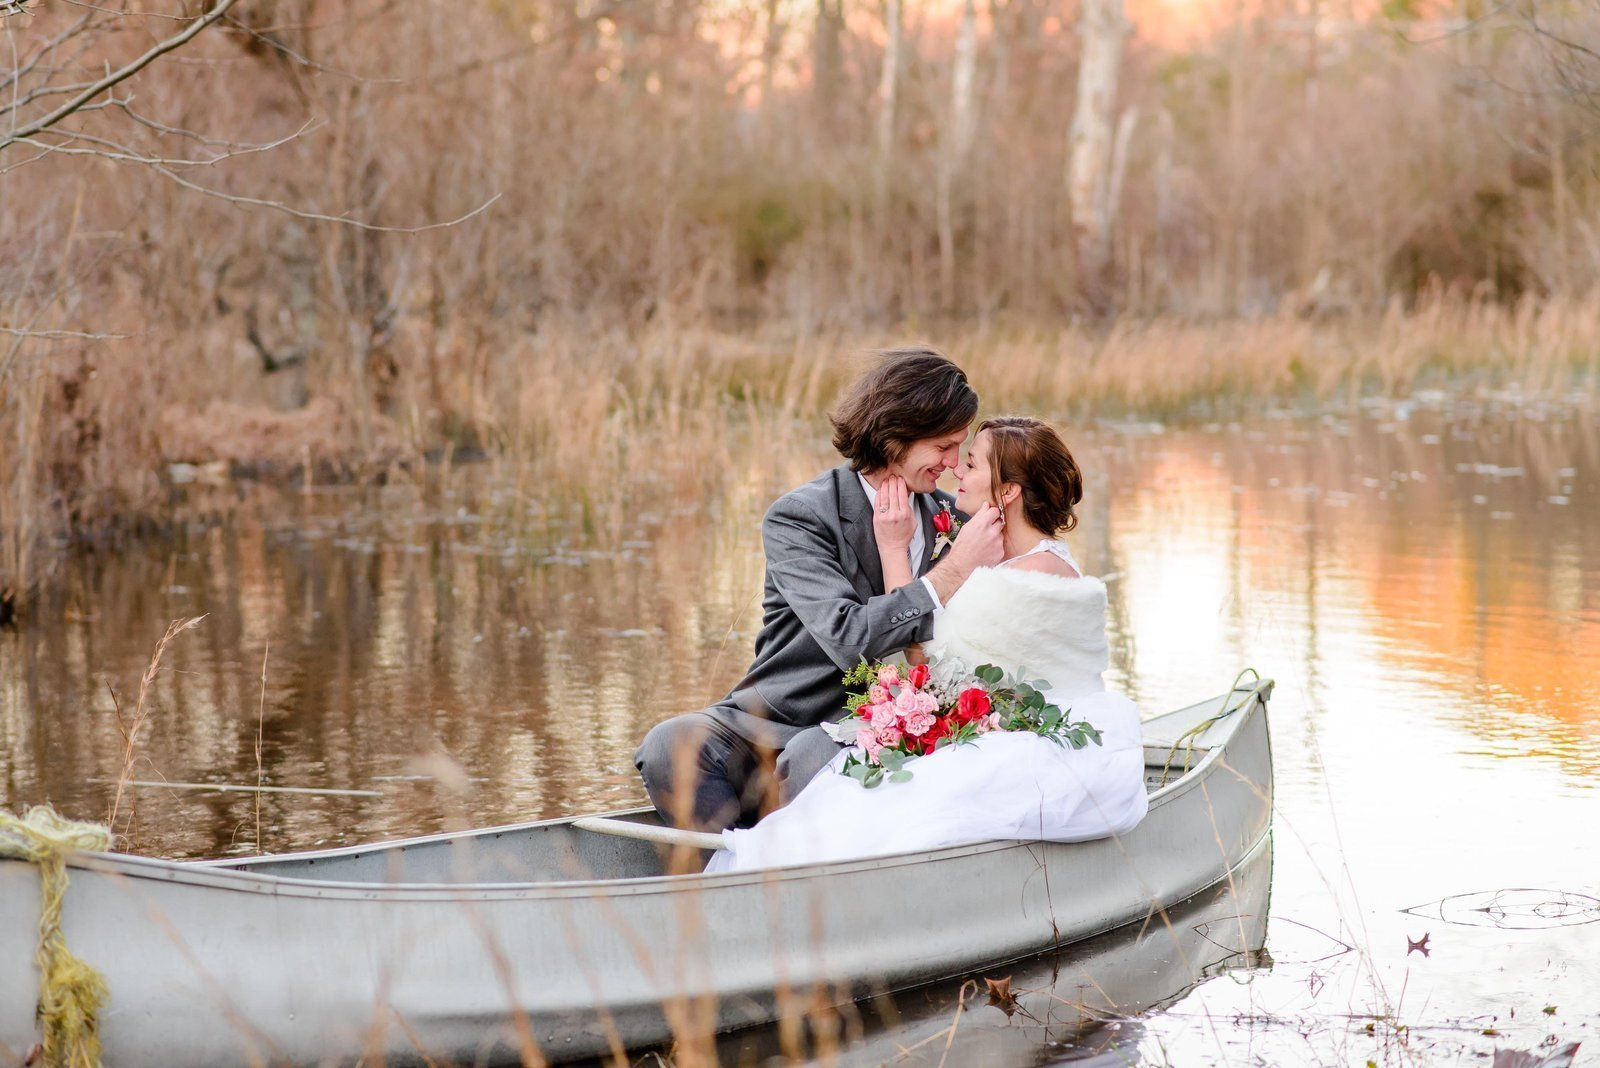 BSP-DC-Wedding-Photographers-Couples-Intimate-Moment-Canoe-Engagement